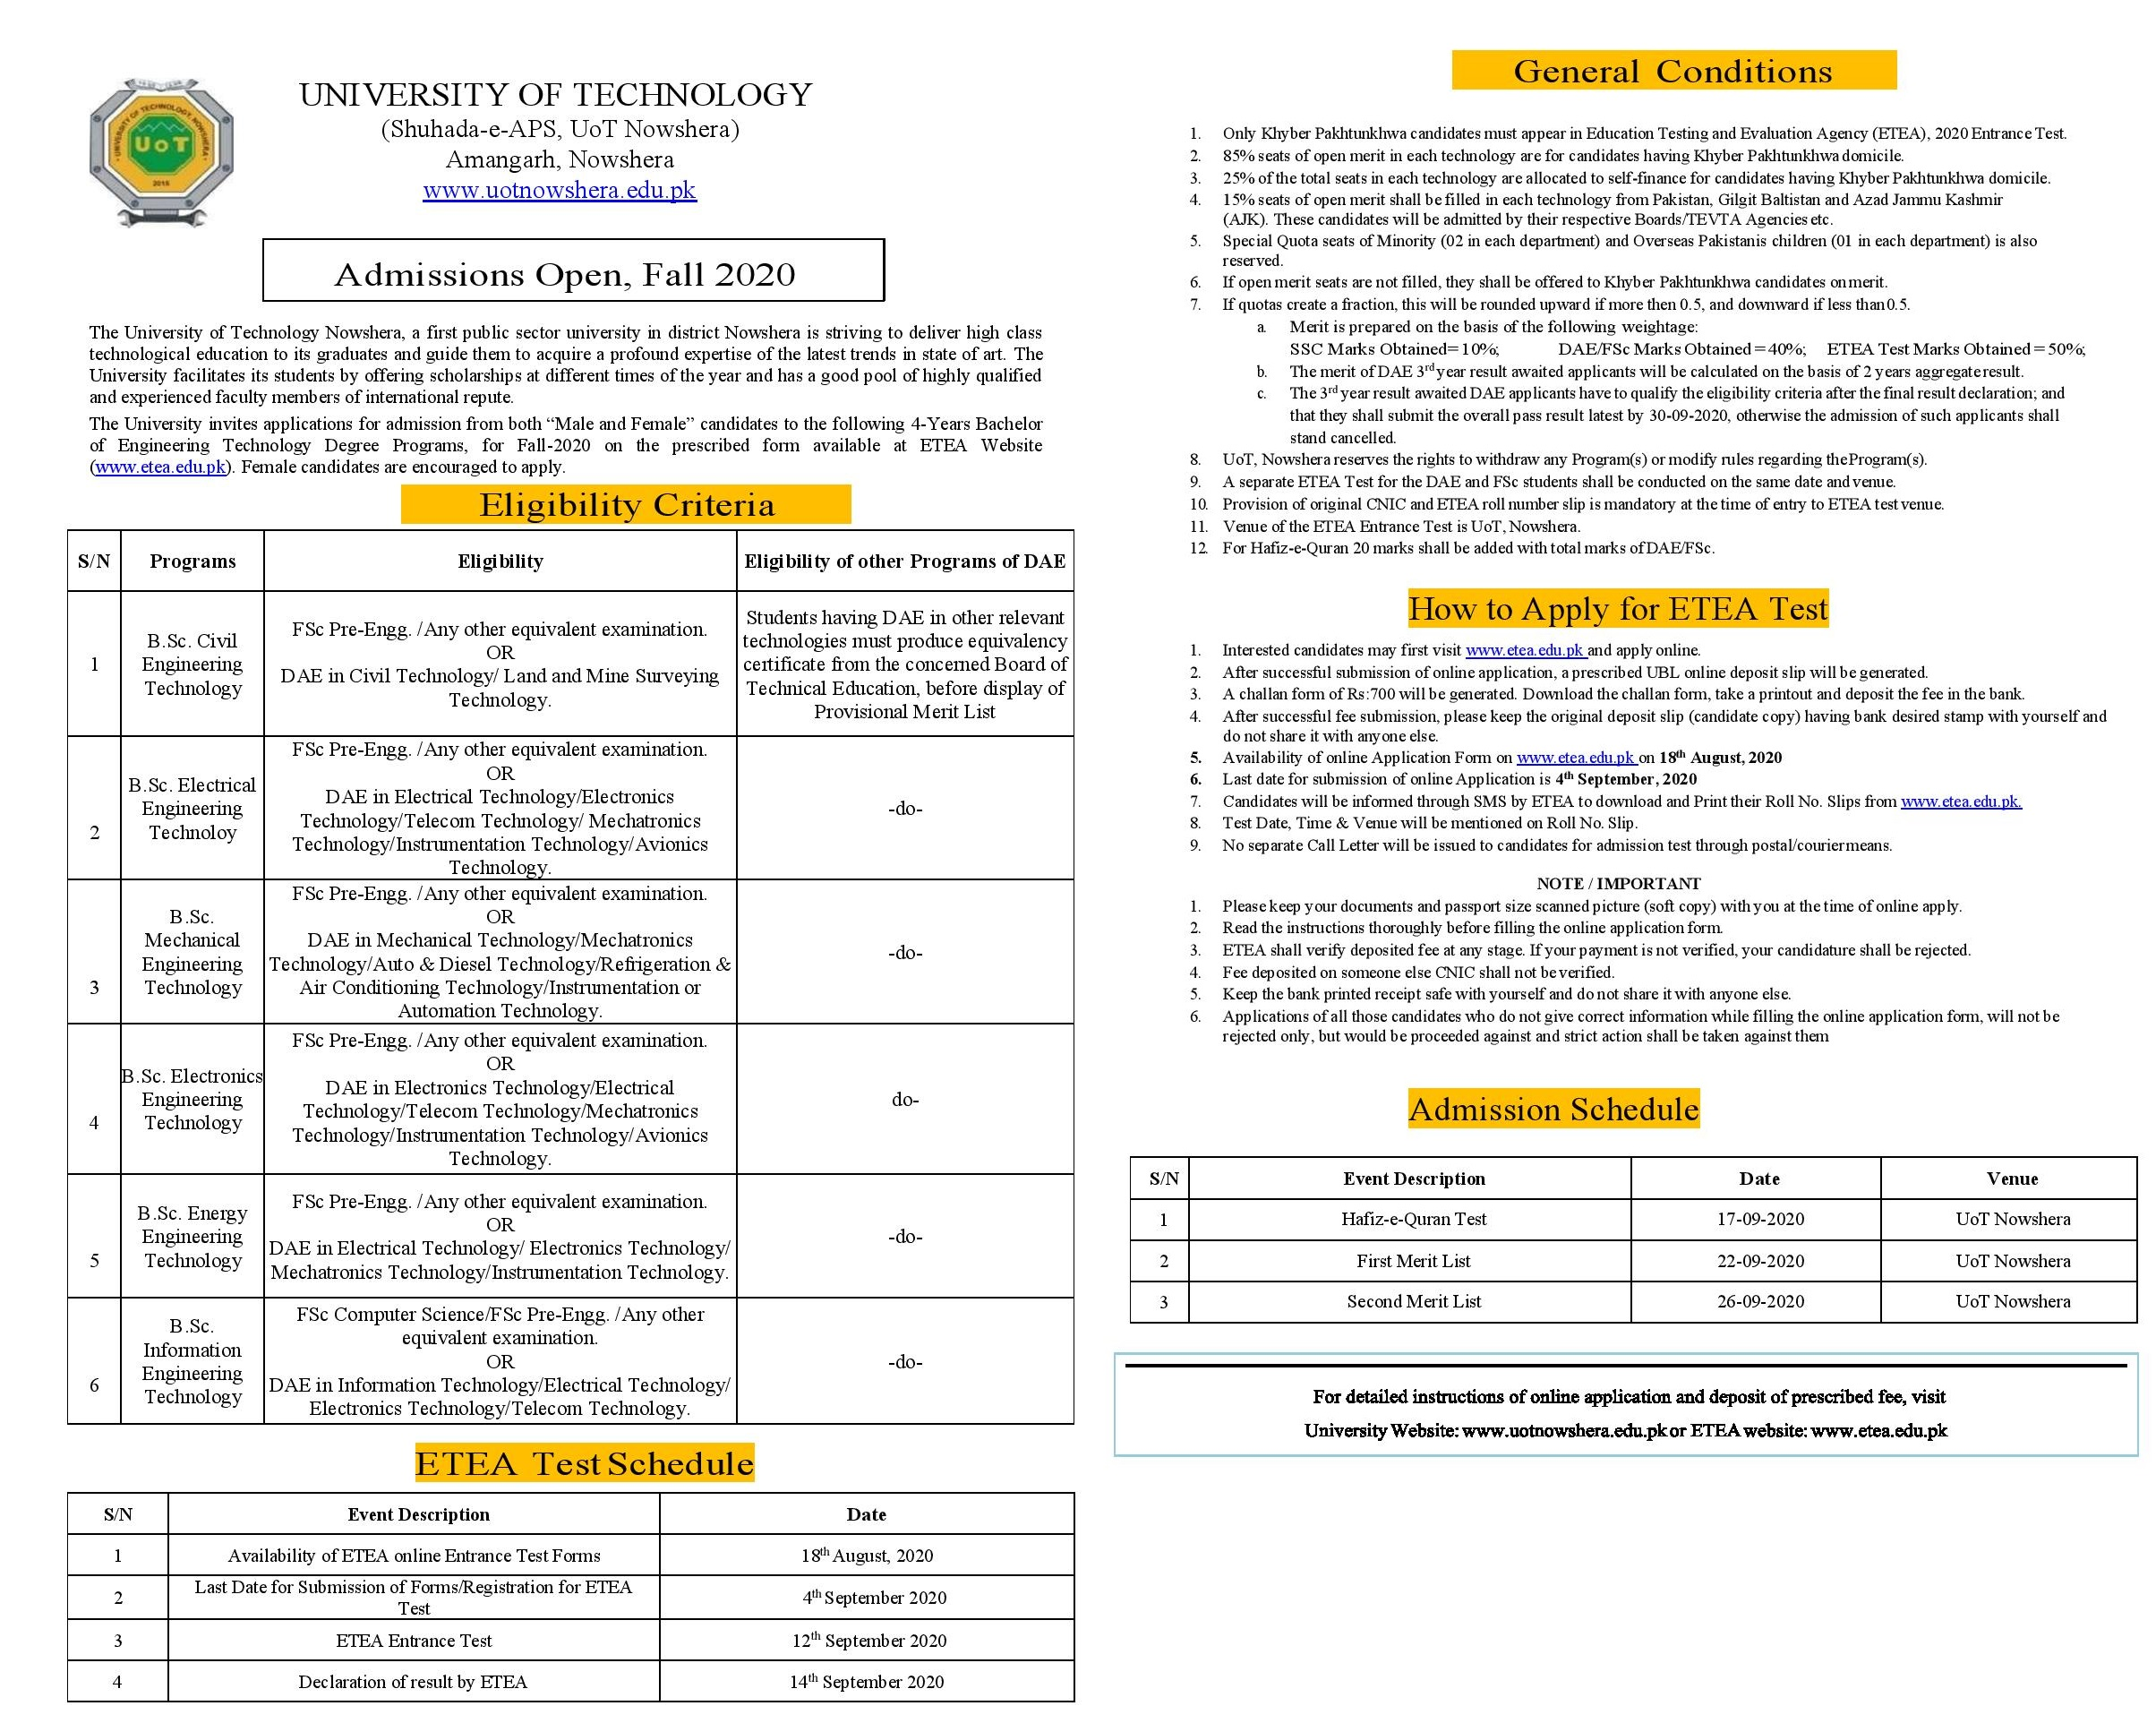 University of Technology UOT Nowshera Fall Admission 2021 Apply Online